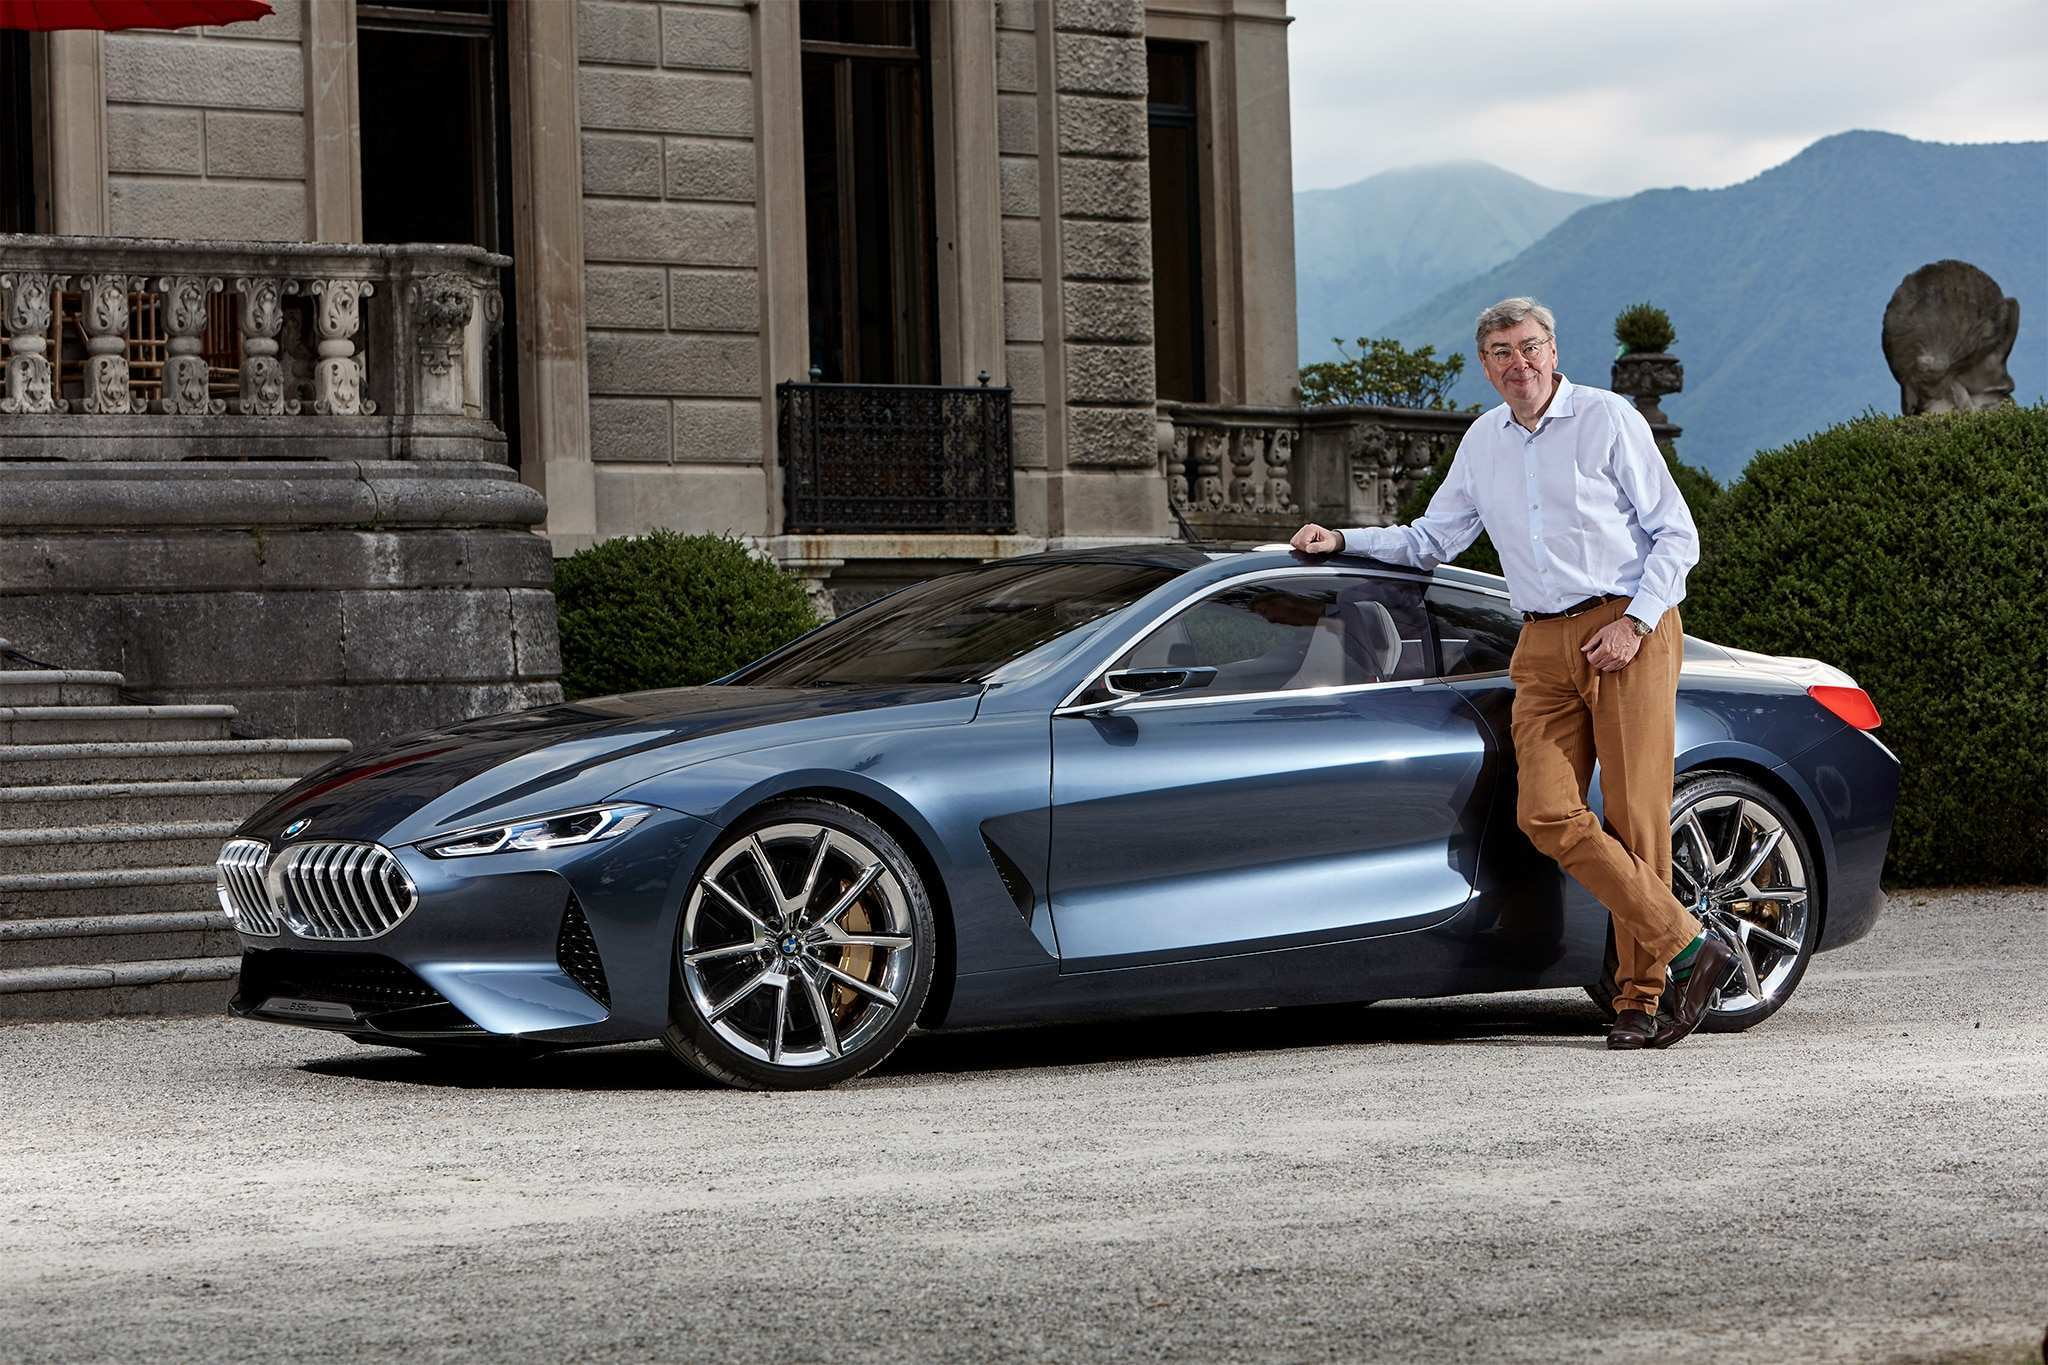 91 New 2020 Bmw 8 Series Price Redesign for 2020 Bmw 8 Series Price